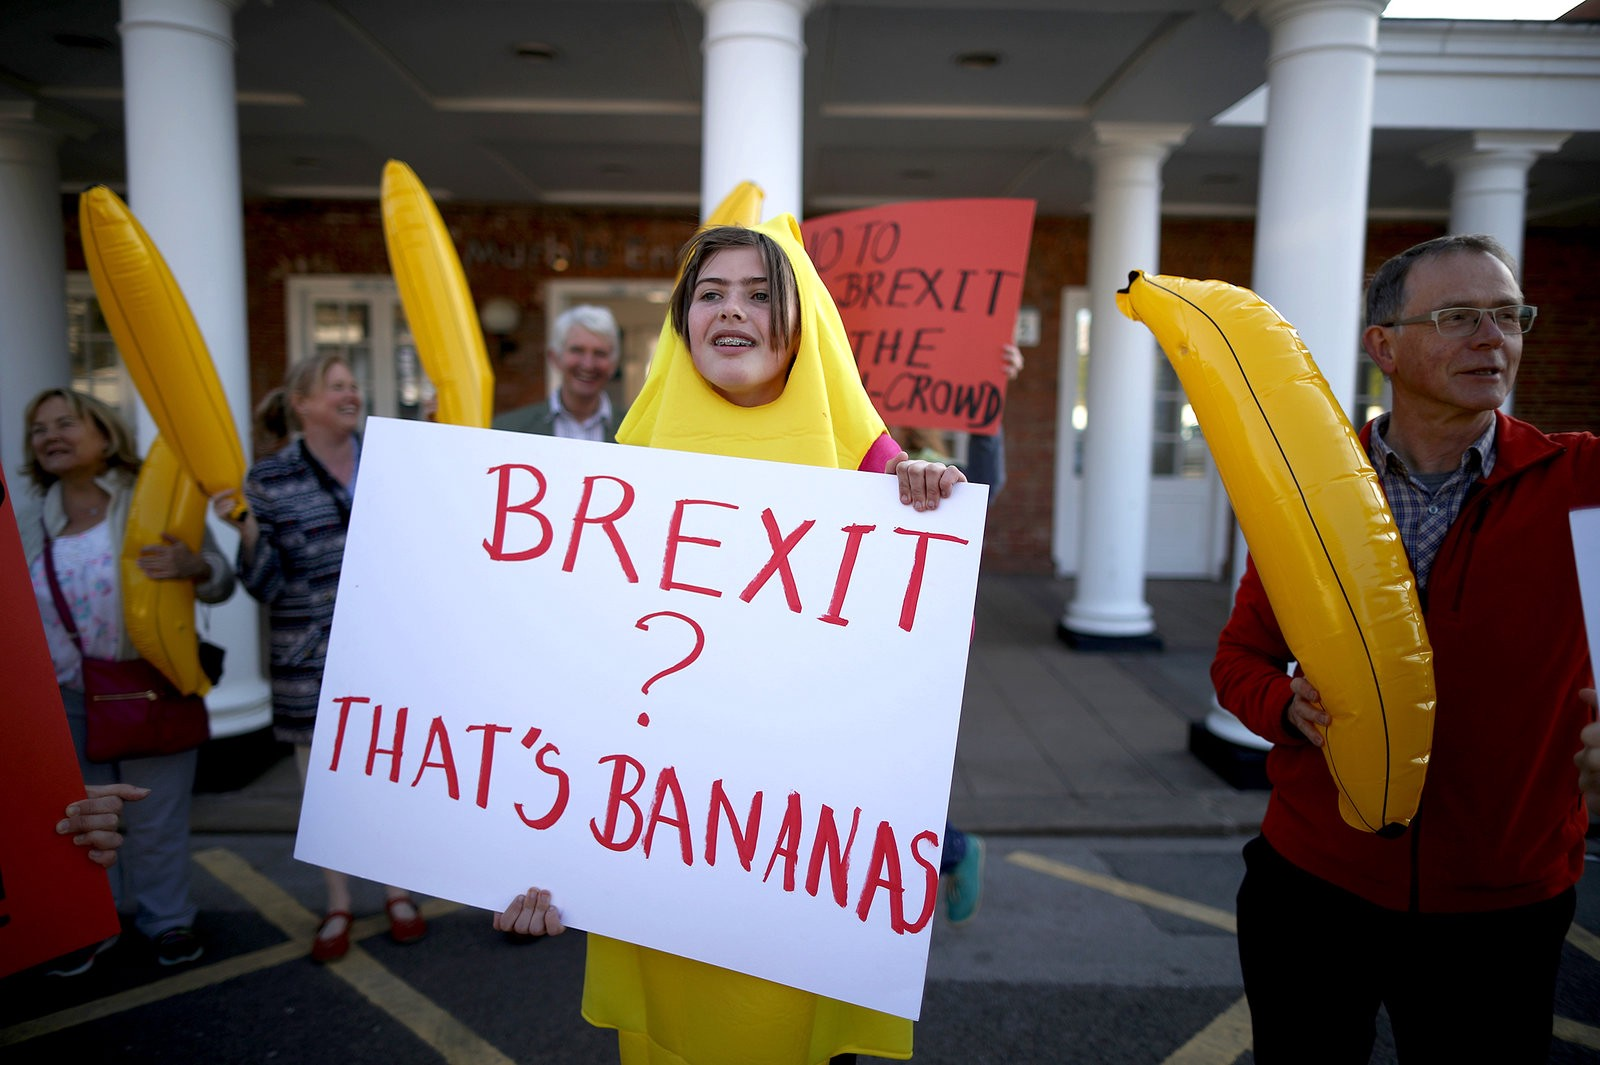 https://www.npr.org/sections/thesalt/2016/06/21/482952581/bendy-bananas-and-barmaid-bosoms-the-u-k-s-crazy-anti-eu-food-myths